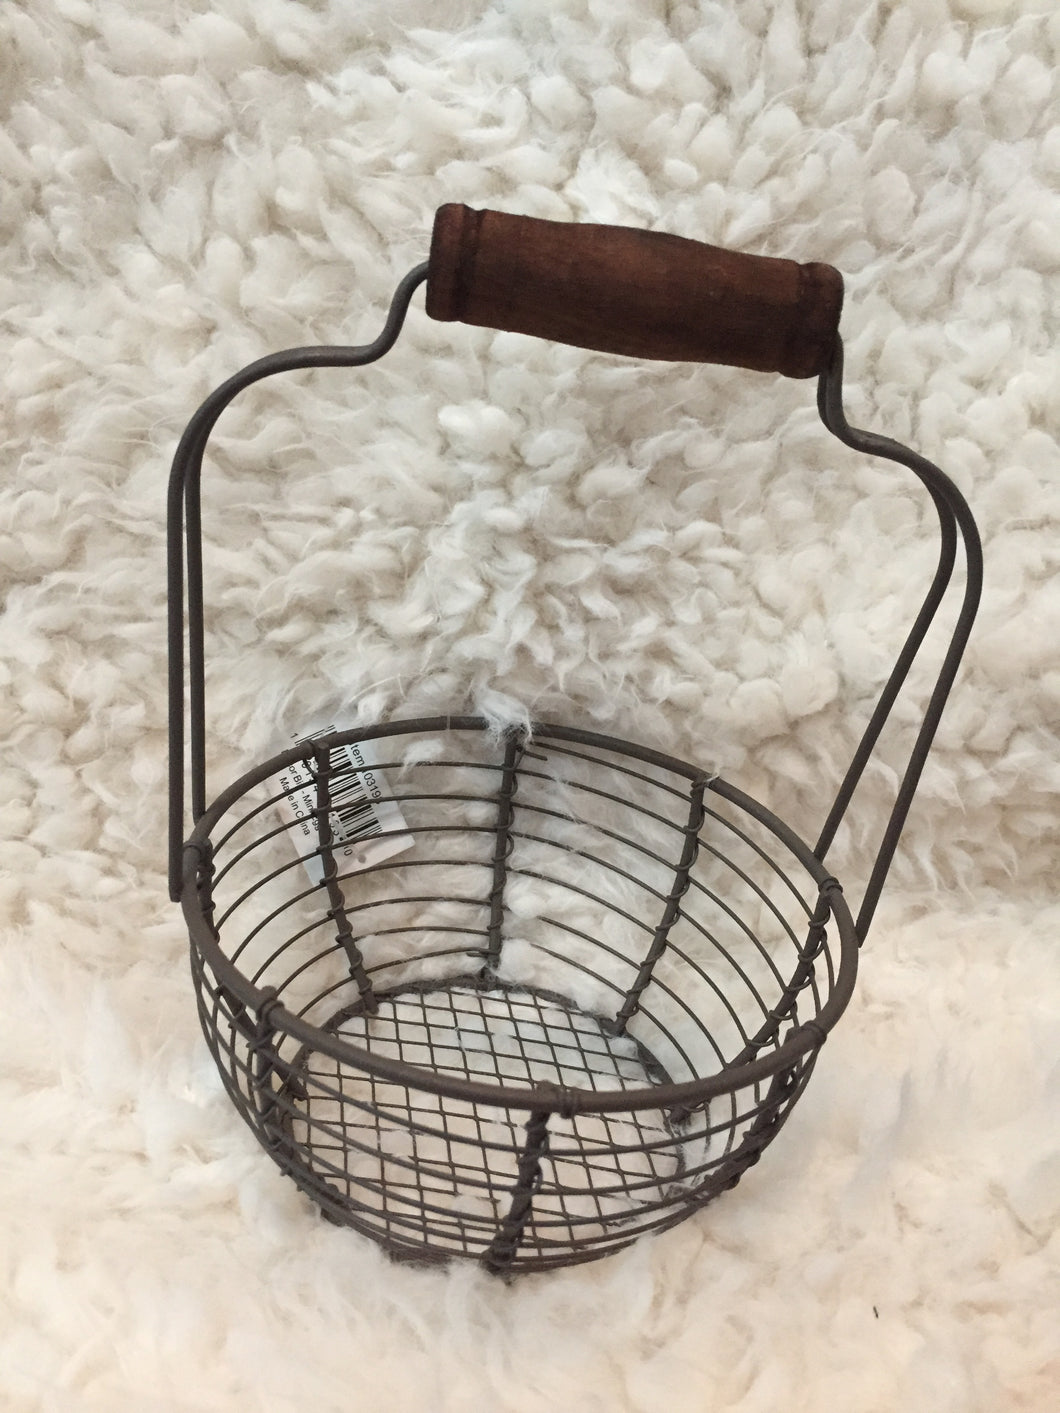 Top handle small wire basket